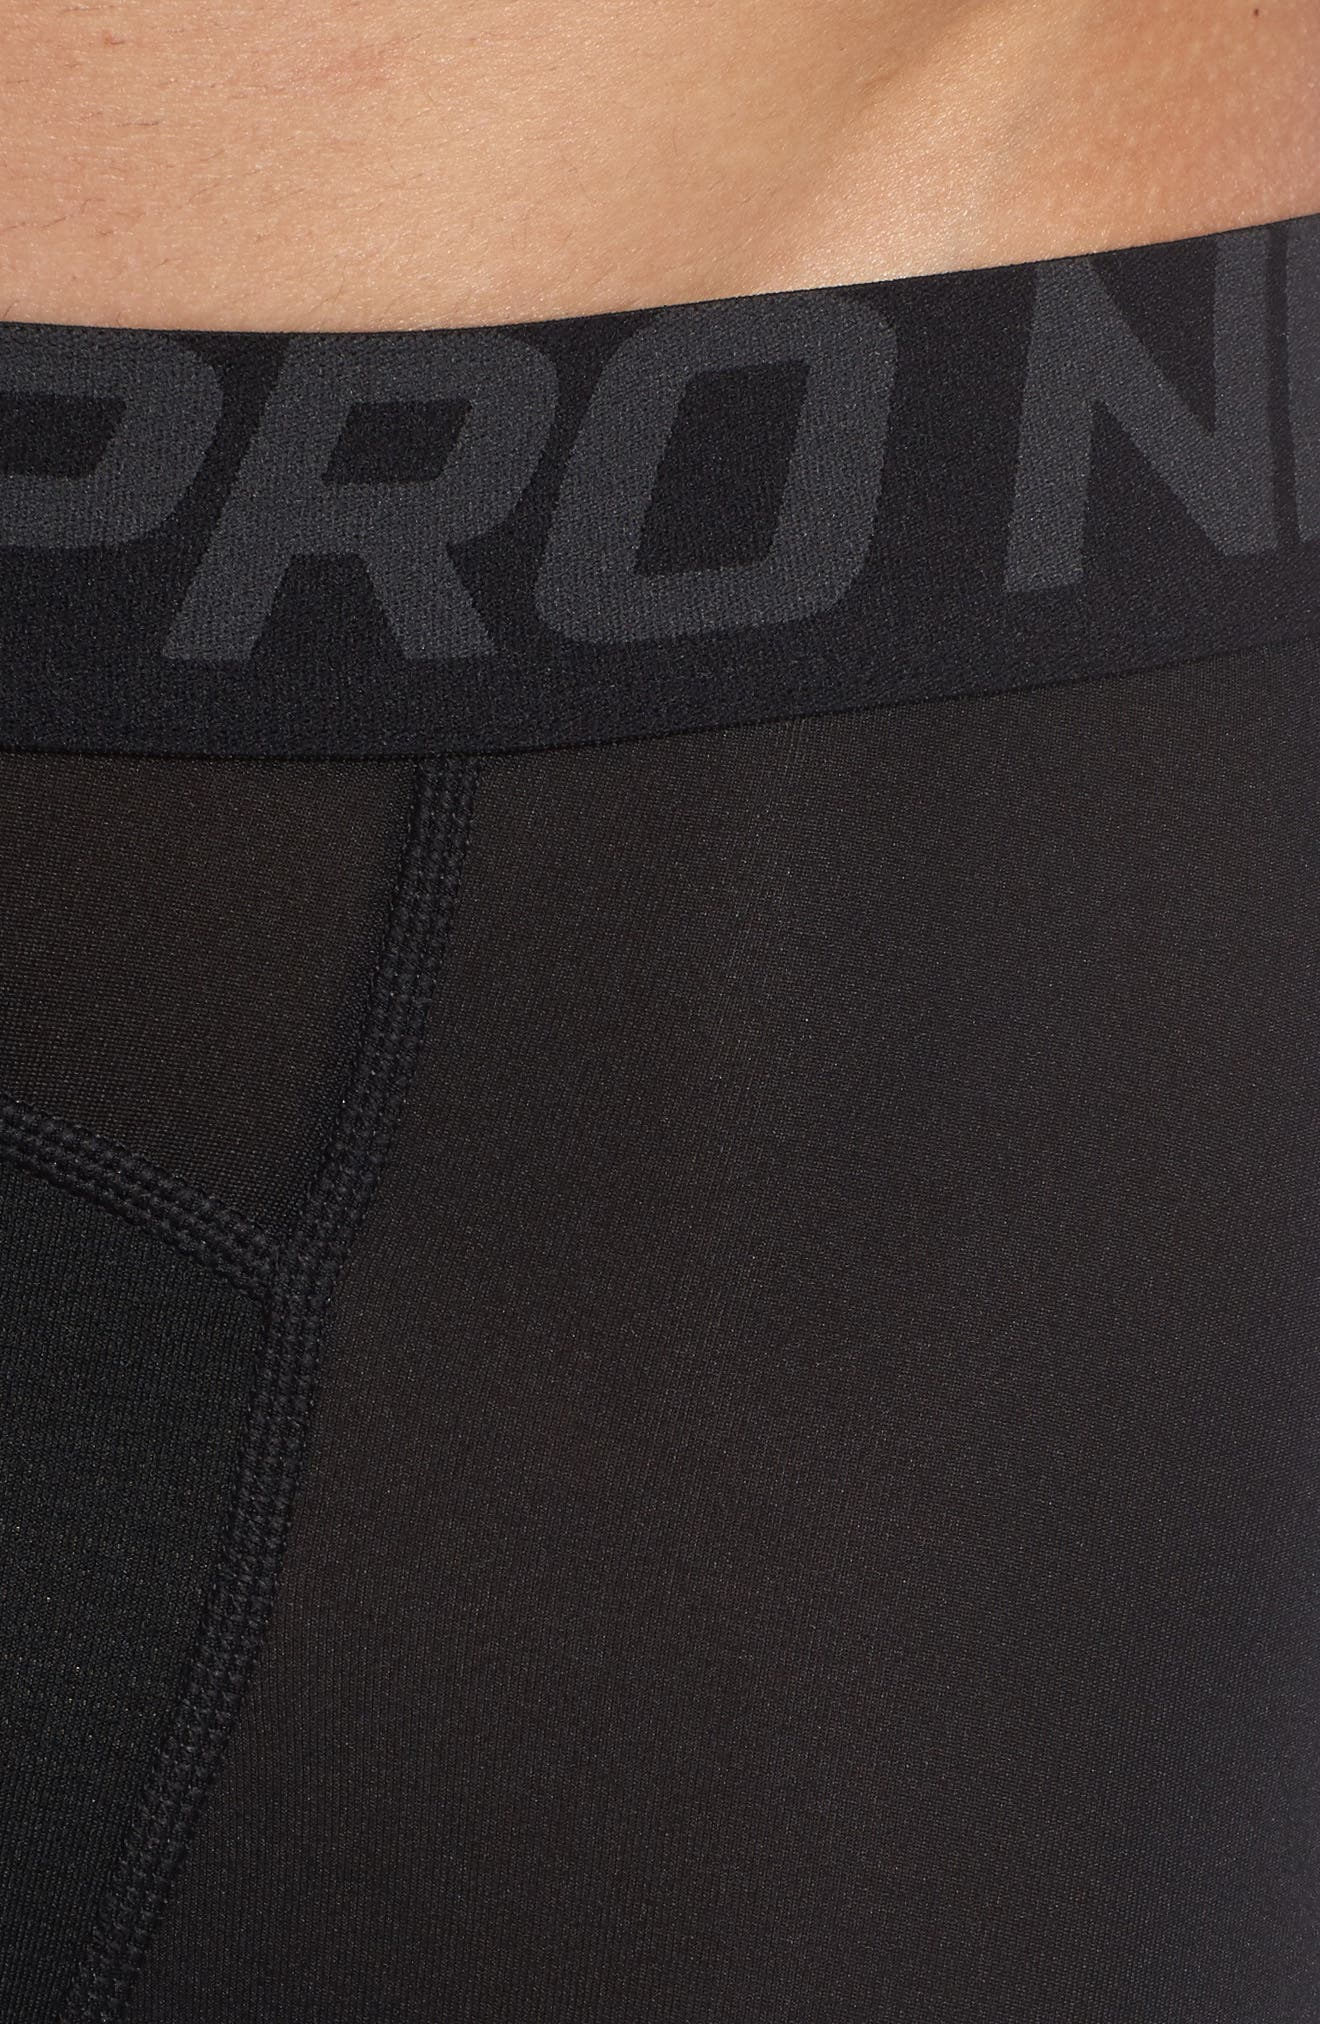 Pro Athletic Tights,                             Alternate thumbnail 4, color,                             BLACK/ ANTHRACITE/ WHITE